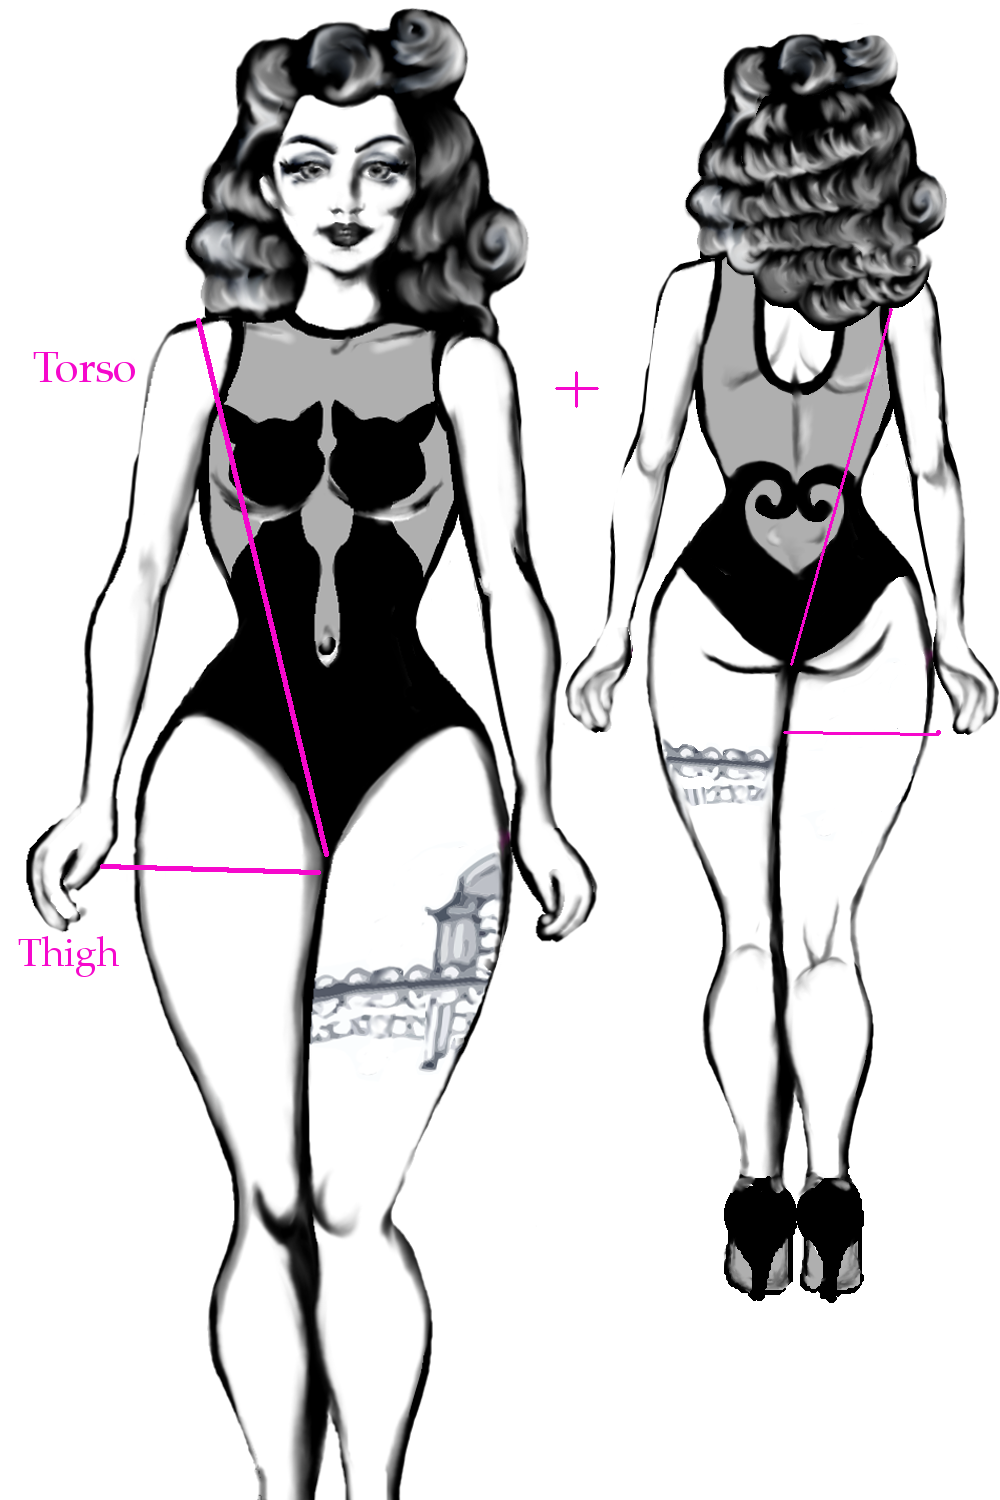 betty torso measurements.png